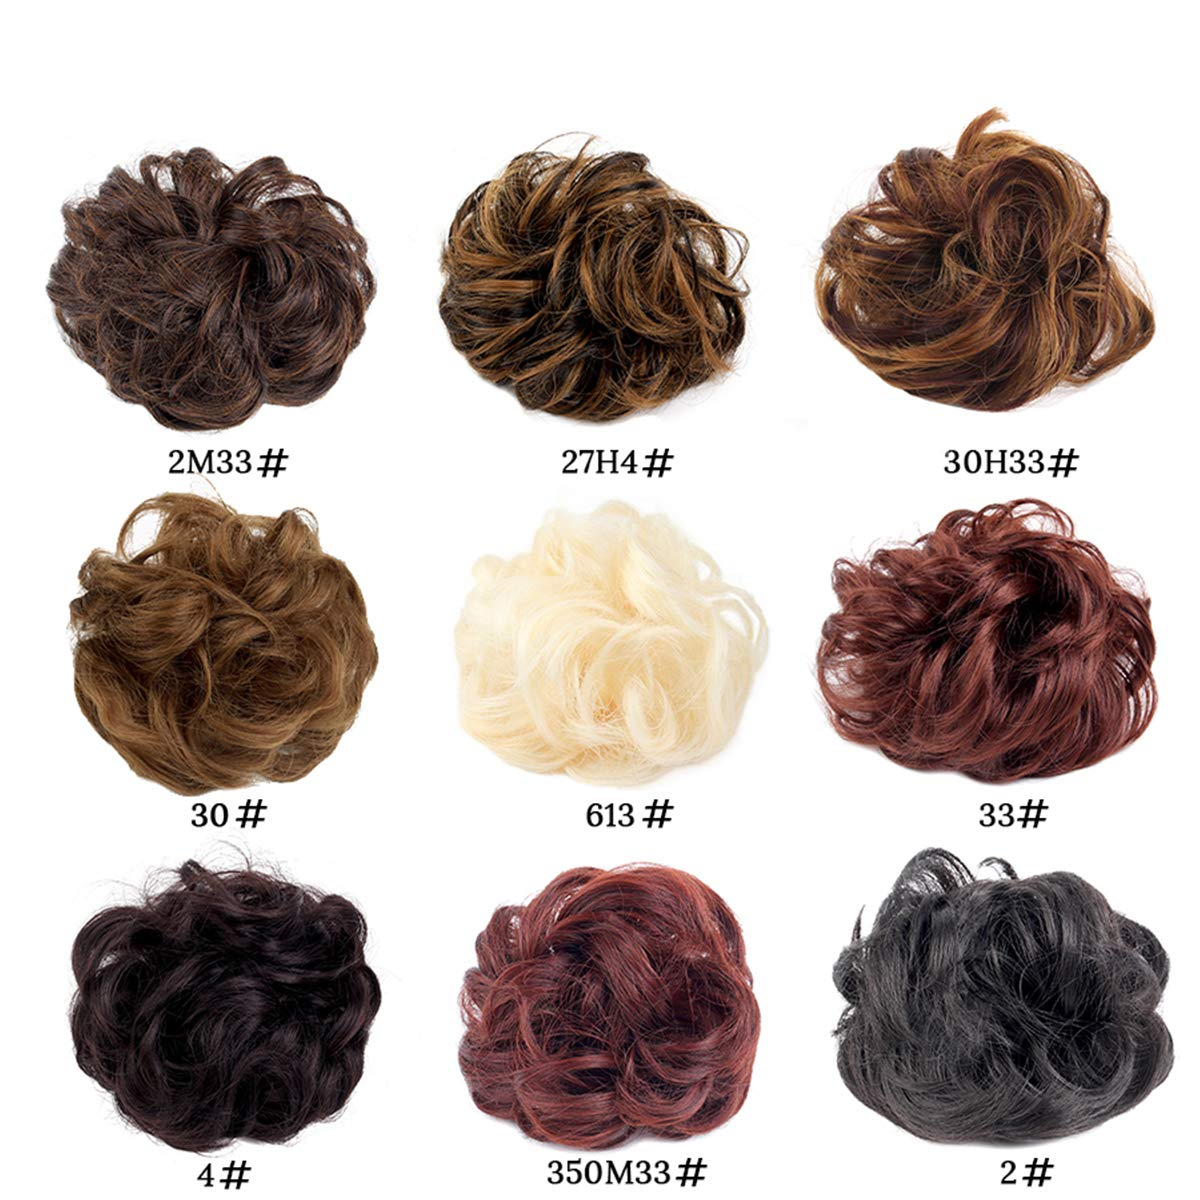 Leeons Wavy Donut Updo Ribbon Ponytail Hair Extensions Curly Messy Bun Dish Scrunchy Scrunchie Hairpiece Wave Bun Scrunchie Synthetic Hair Bun (#2) by LEEONS (Image #4)